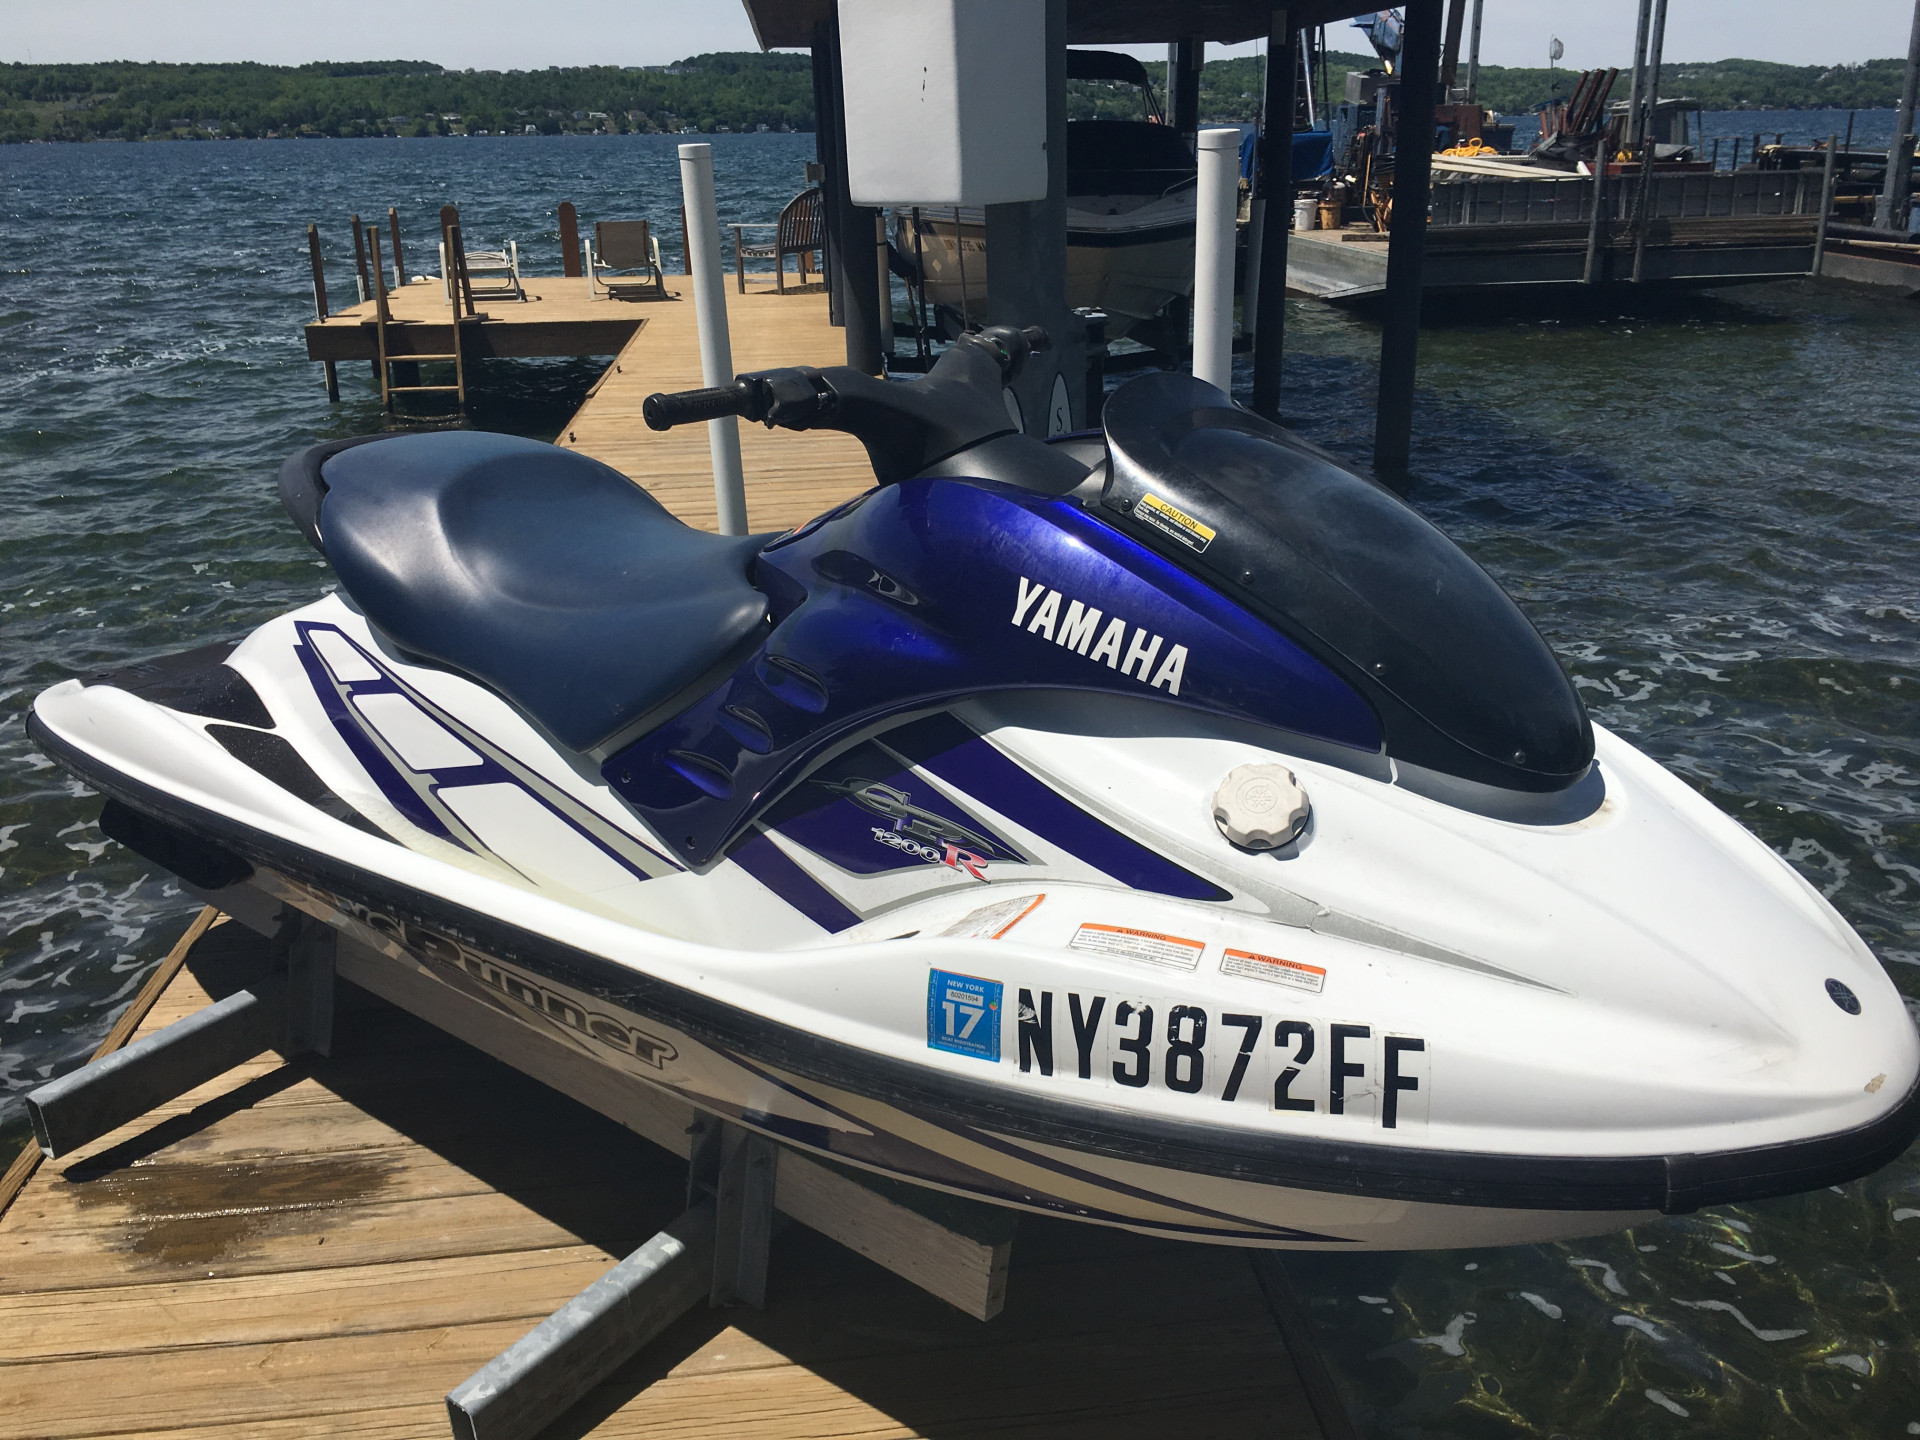 2001 YAMAHA GP1200R 2-PERSON WAVE RUNNER | Sutters Marina